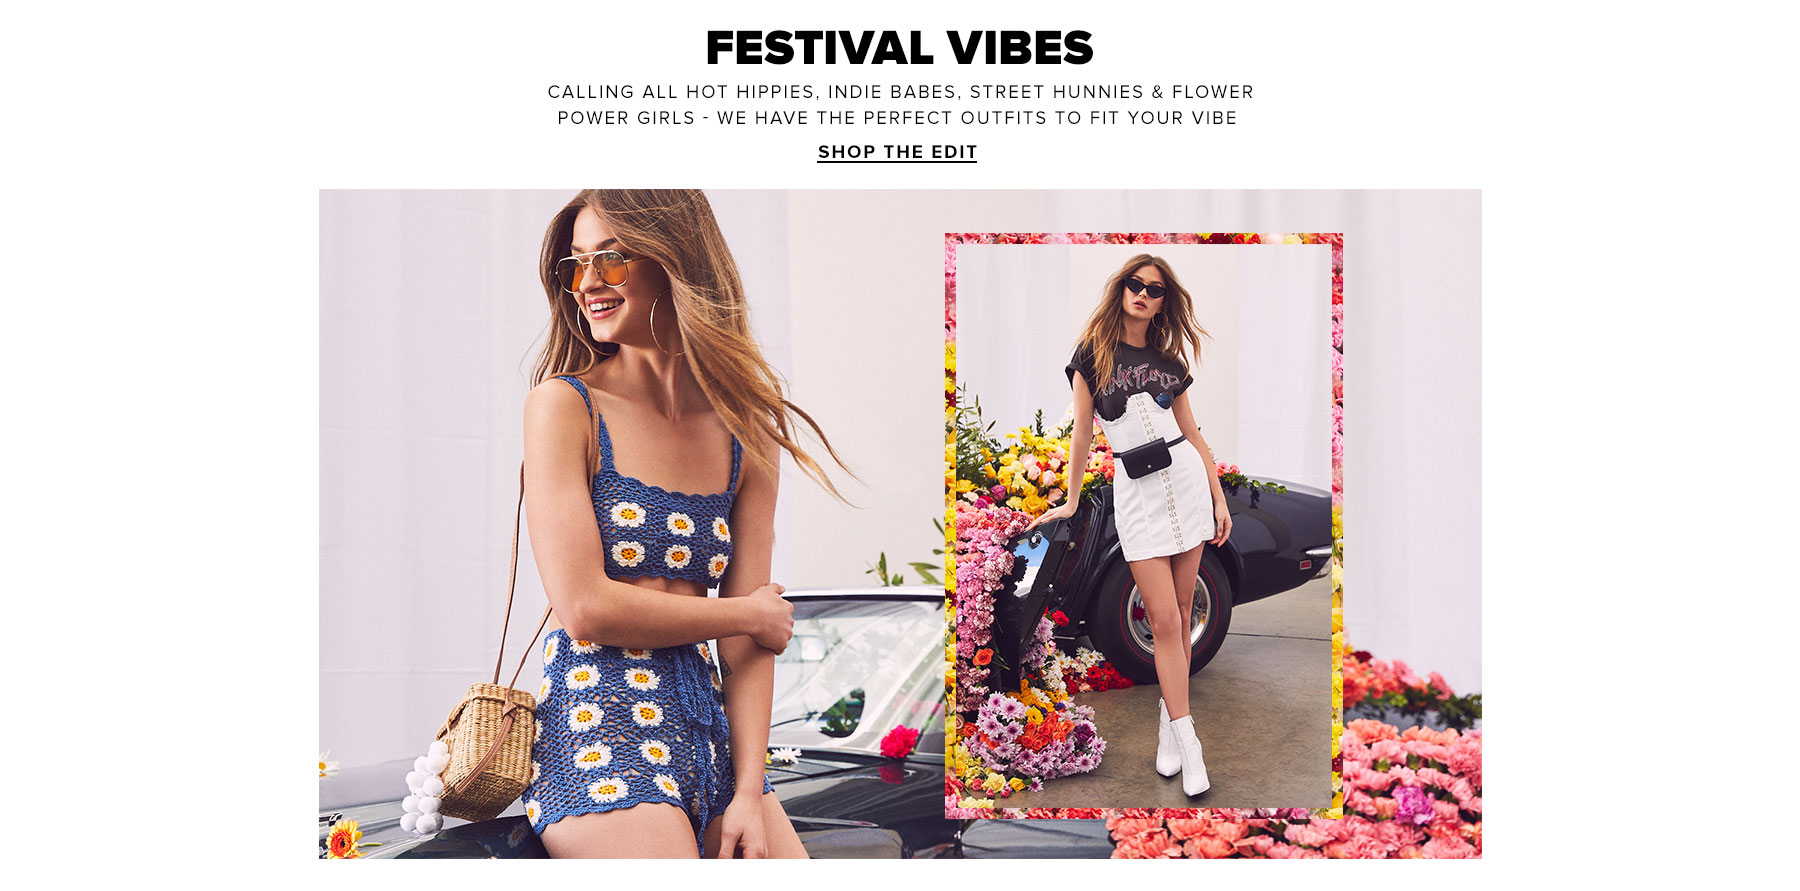 Festival Vibes. Calling all hot hippies, indie babes, street hunnies & flower power girls - we have the perfect outfits to fit your vibe. Shop the edit.